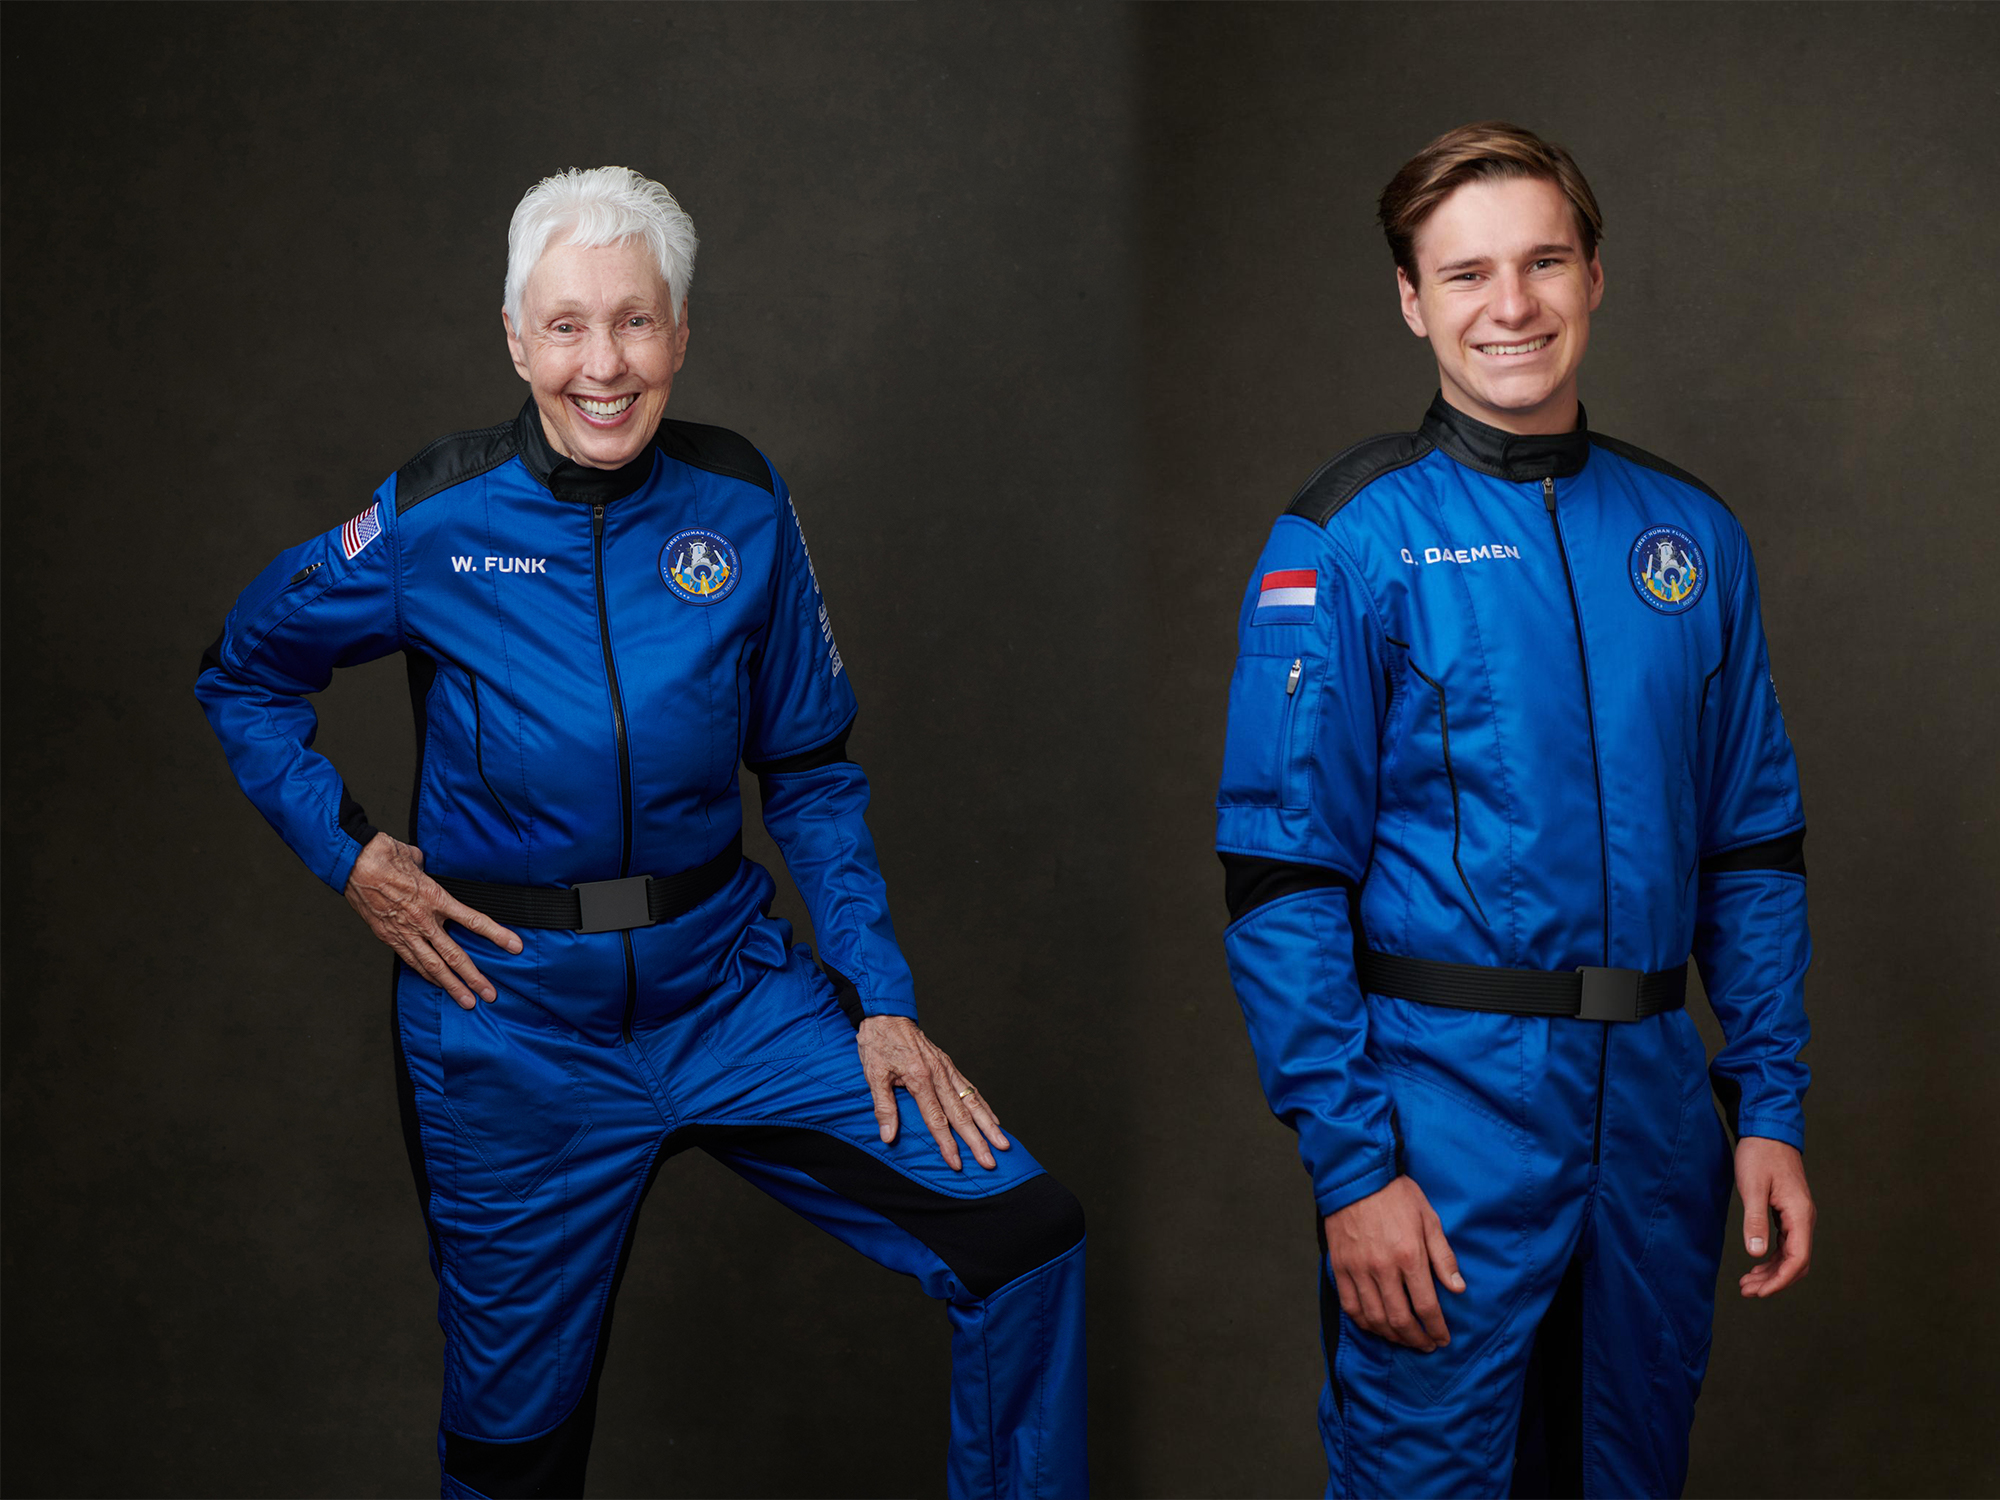 Blue Origin flies the Oldest person (Wally Funk) and the Youngest person (Oliver Daemen) to space.